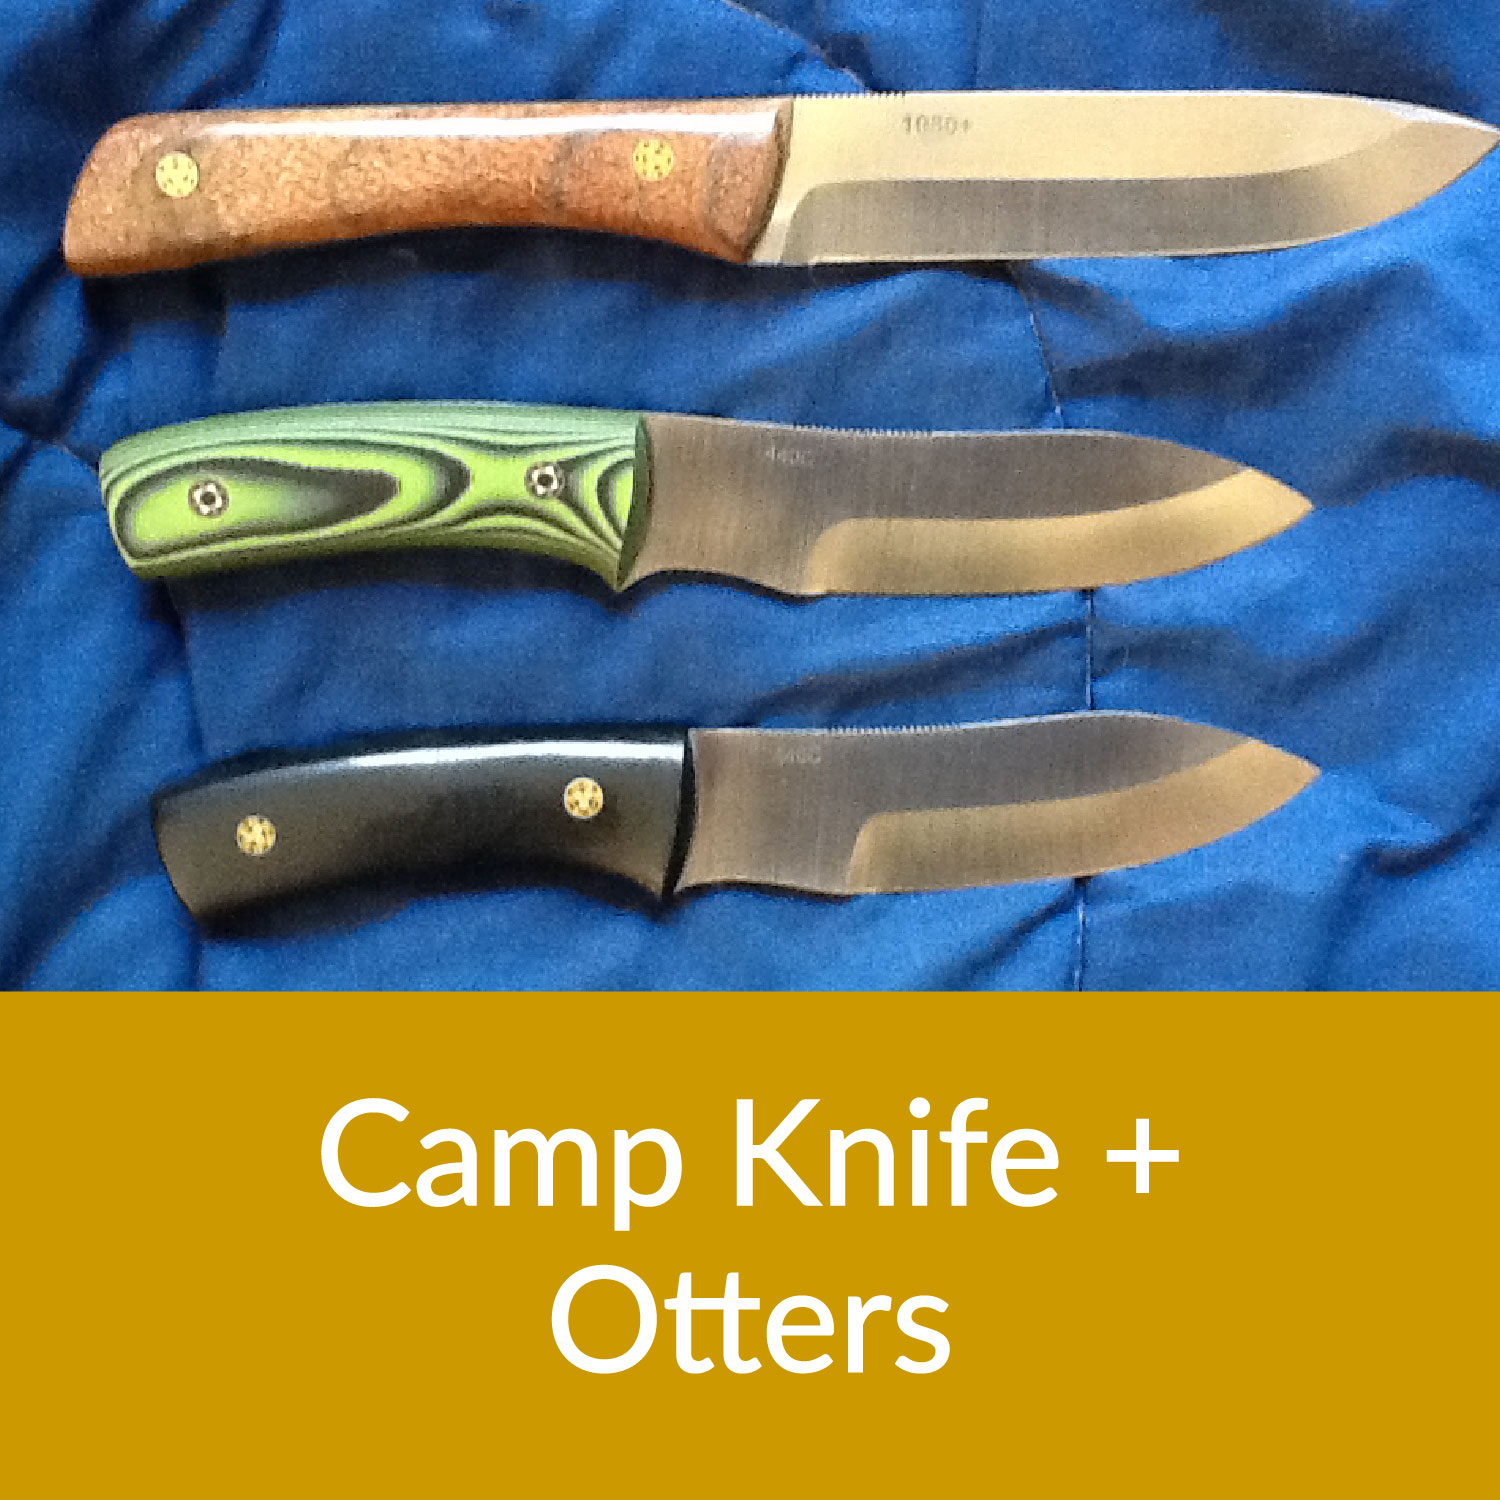 Camp Knives and Otters